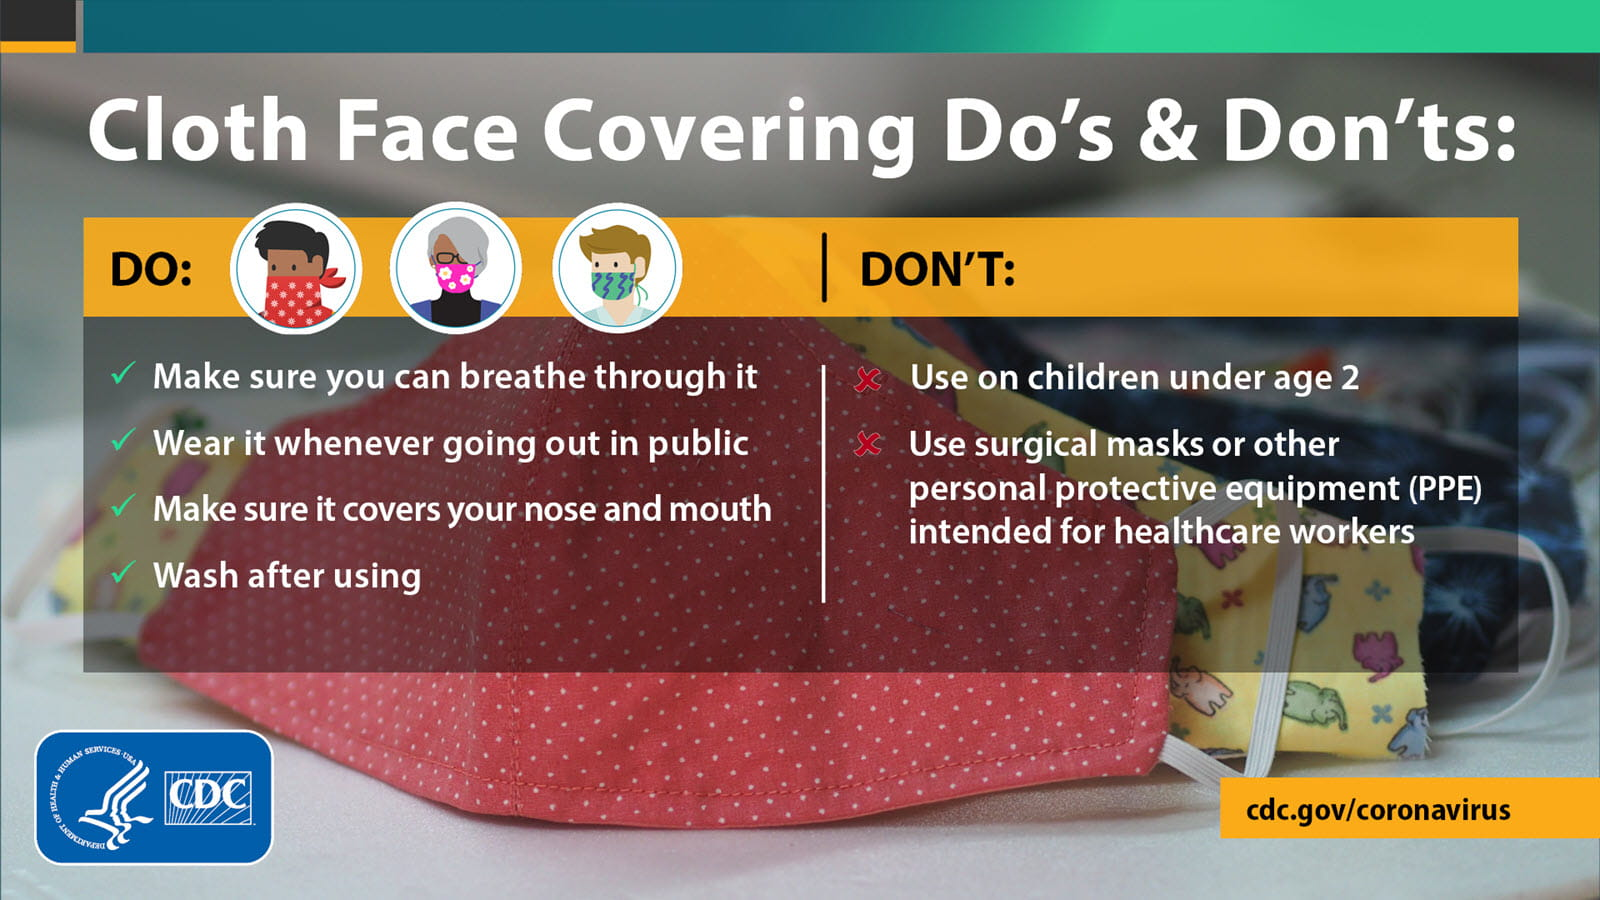 CDC do's and don't about wearing a face mask